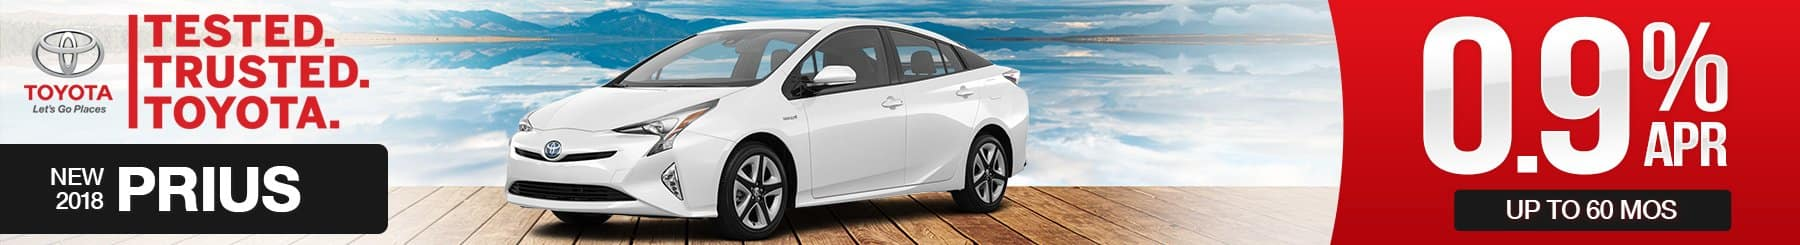 2018-Toyota-Prius-Finance-Special